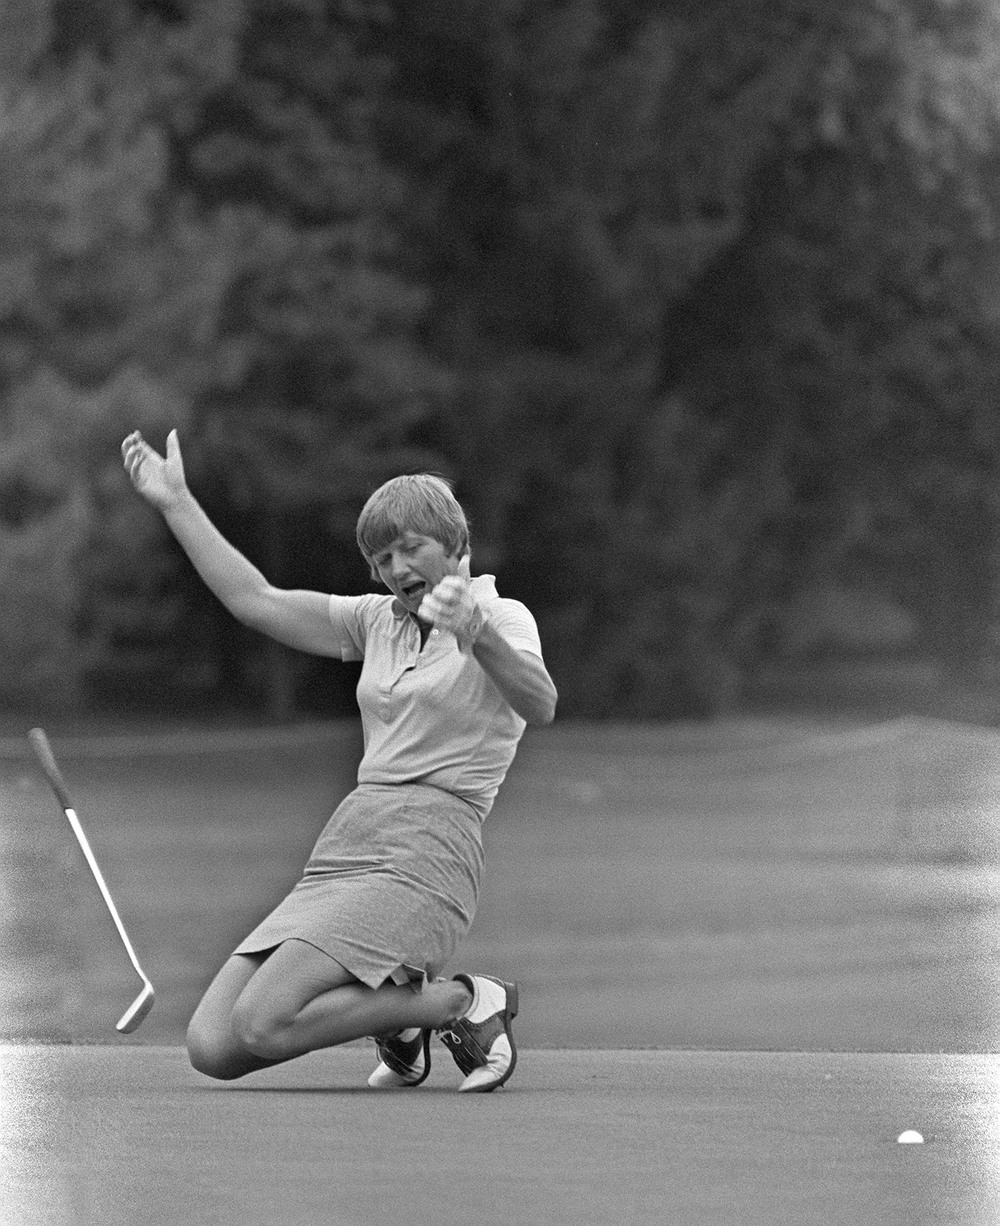 During her time on tour, Sandra Haynie won 42 LPGA tournaments. She won a career-best six tournaments in 1974. She was named LPGA Player of the Year in 1970, a year that saw her win two tournaments.